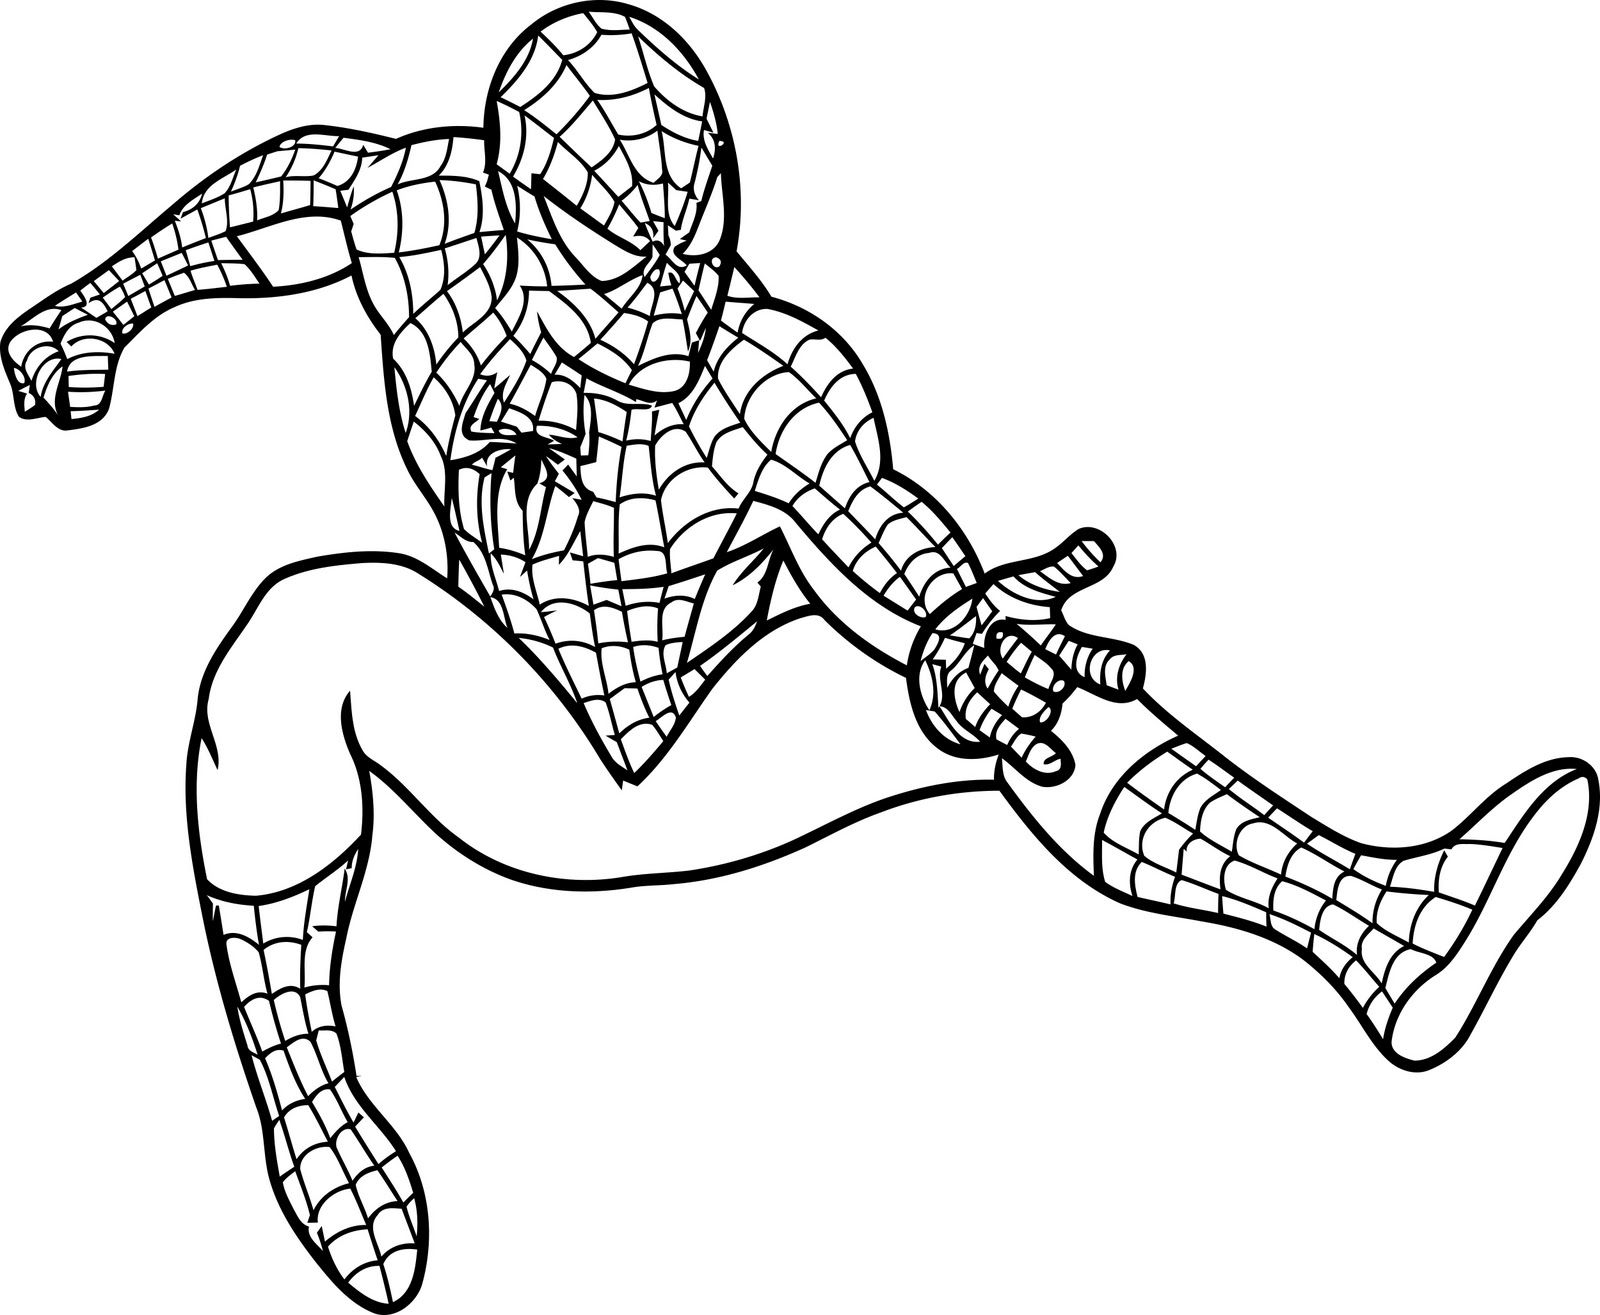 coloring pages of spiderman # 0